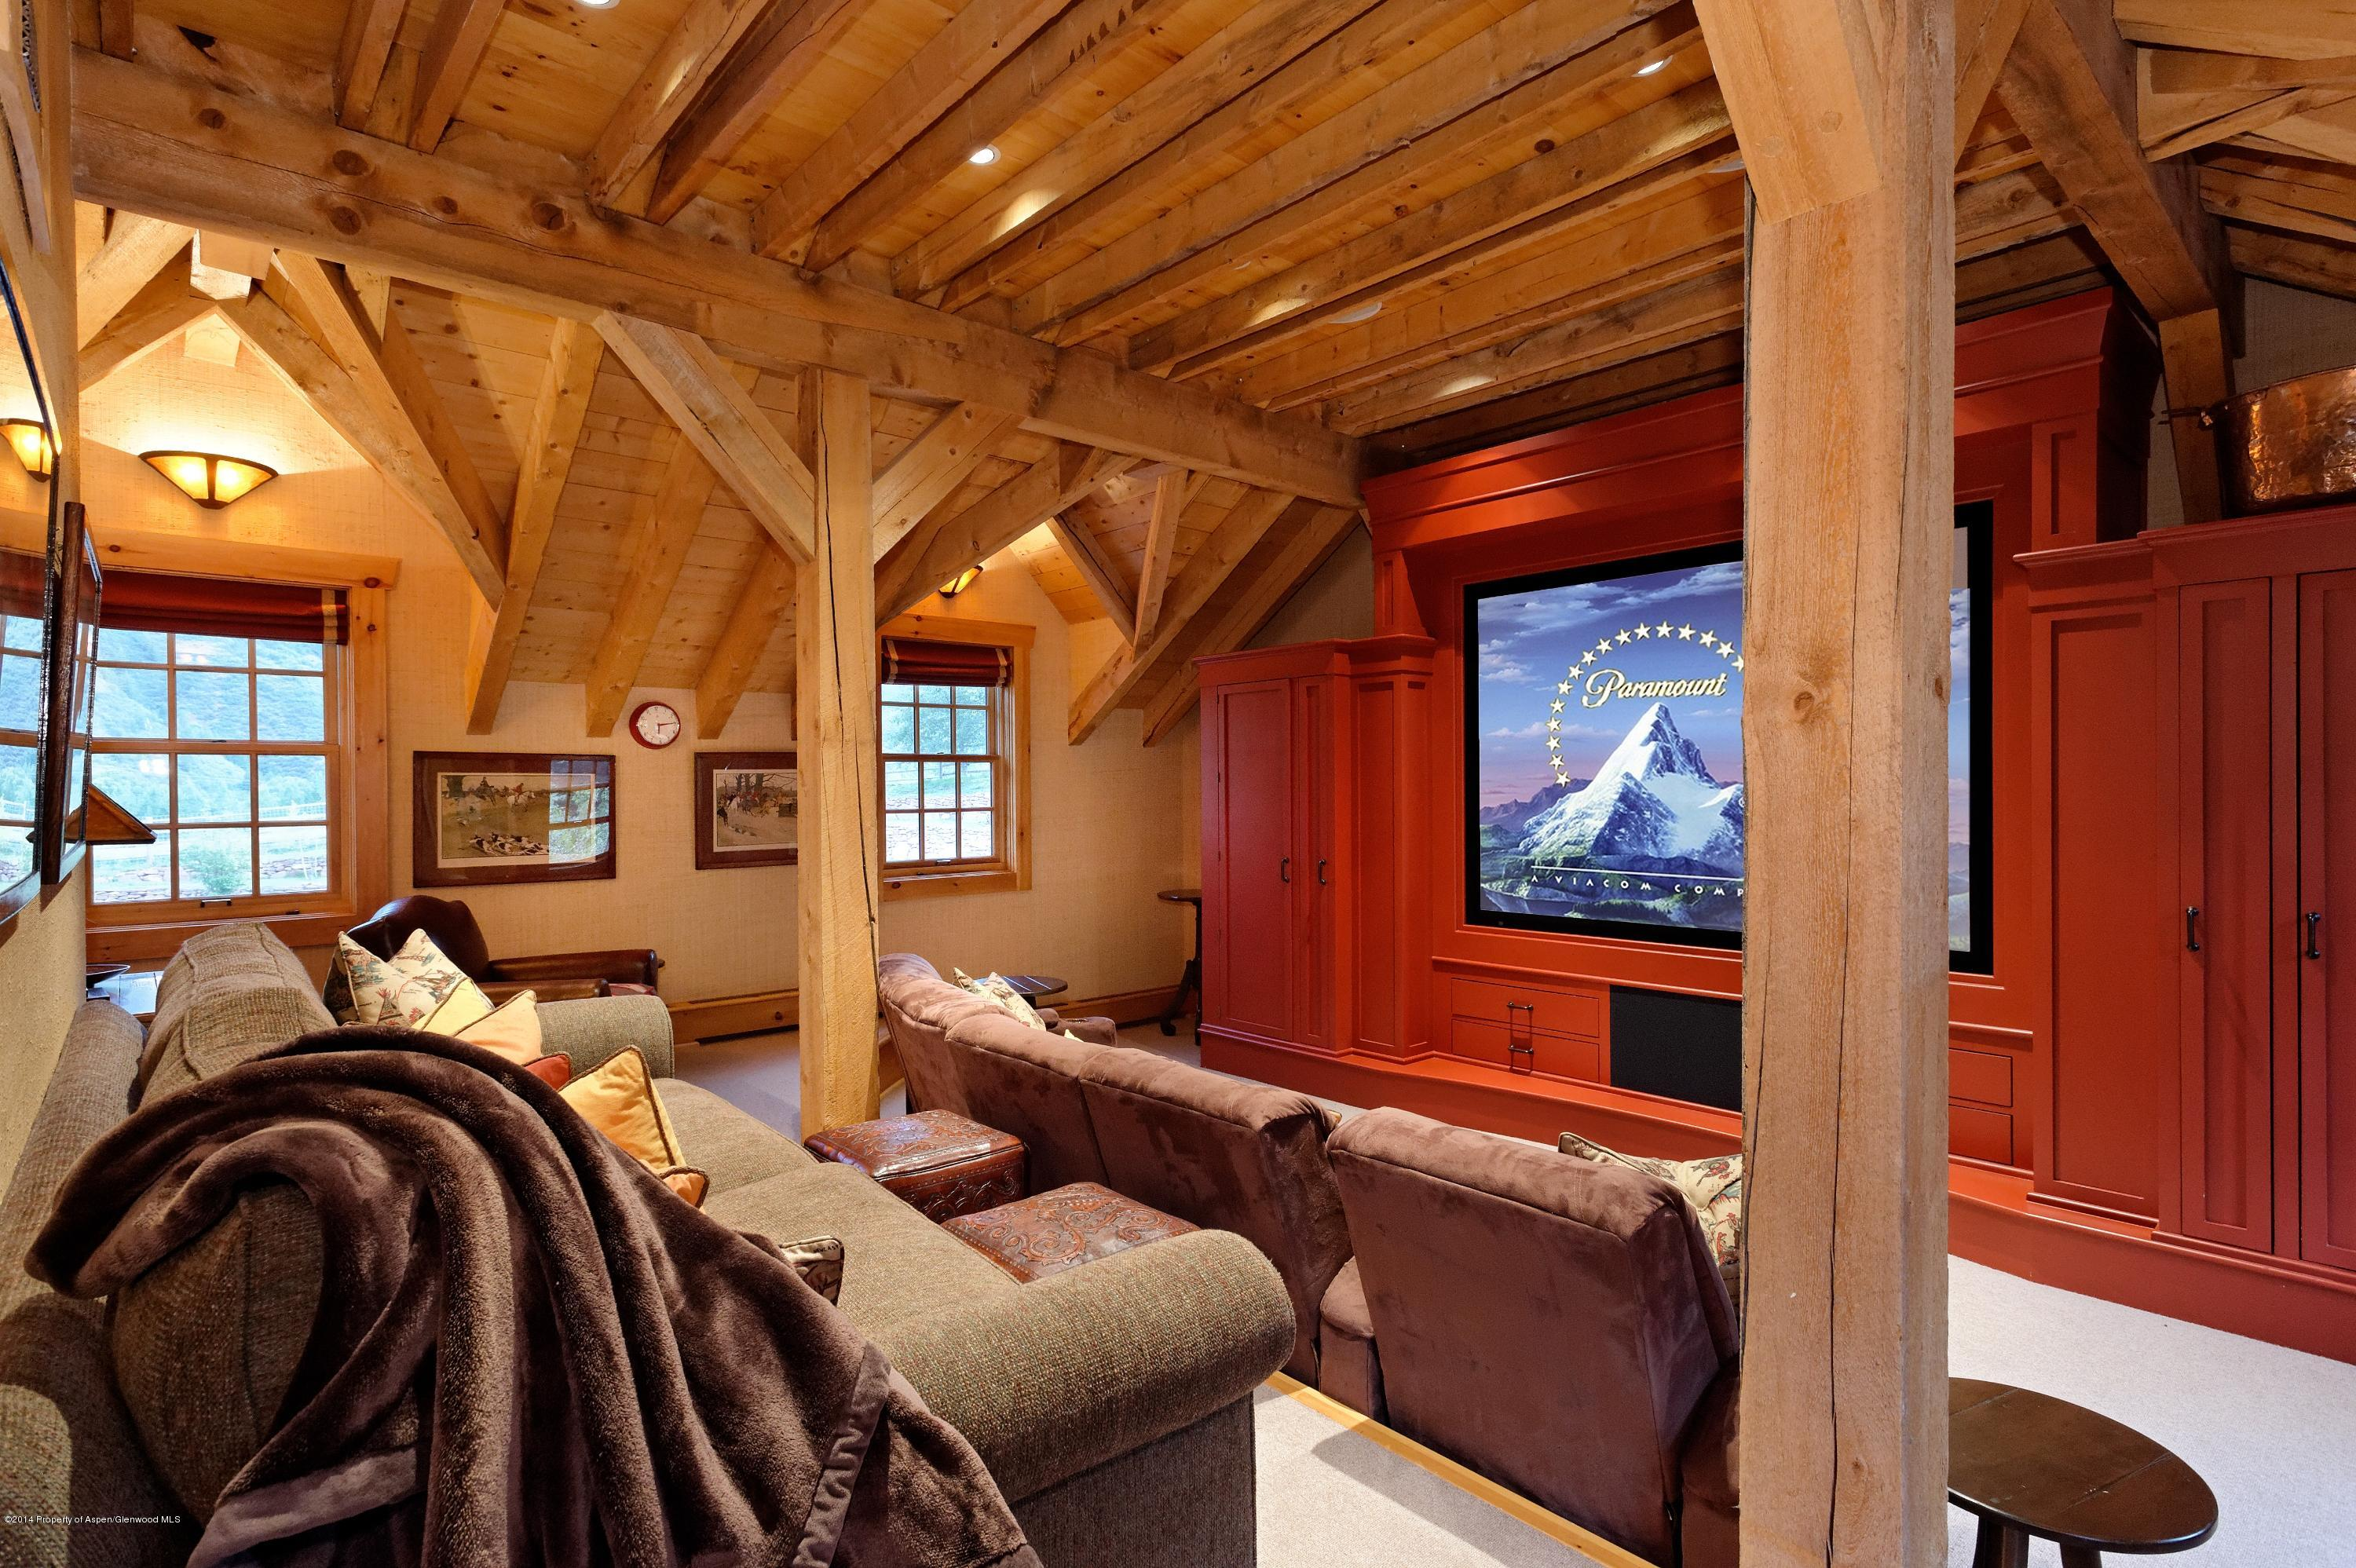 MLS# 135595 - 30 - 50 E River Ranch Road, Snowmass, CO 81654